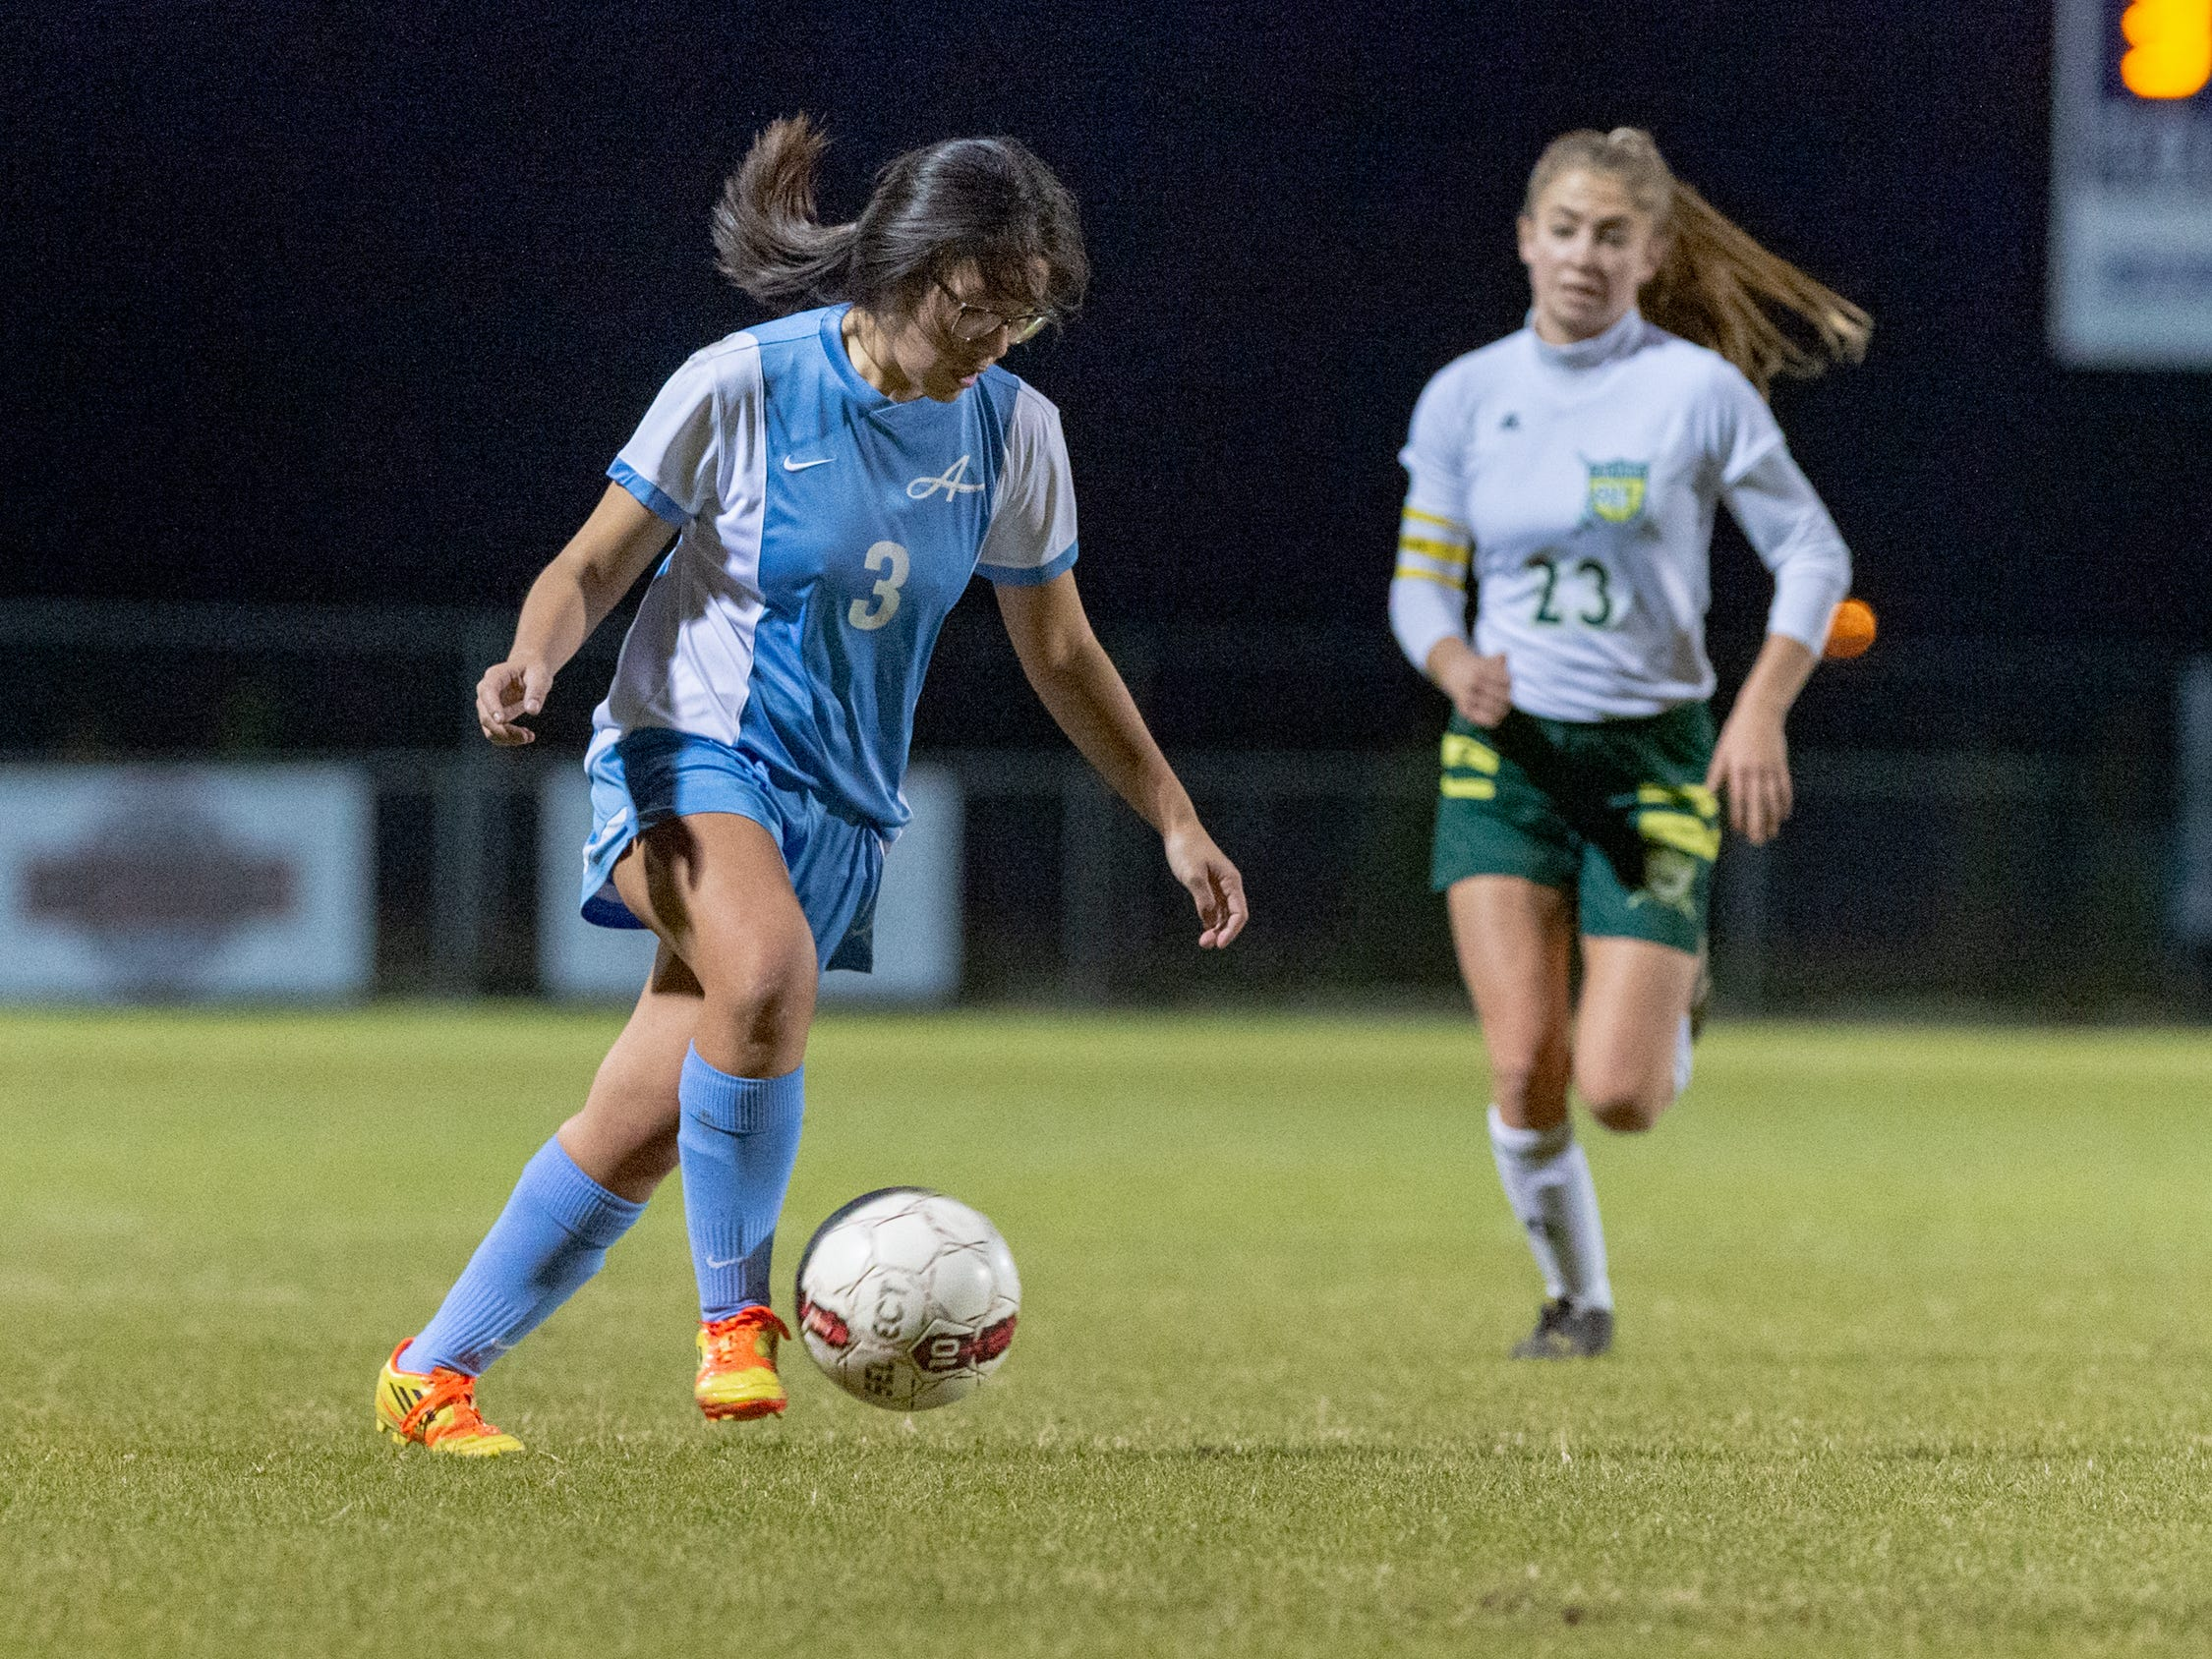 Grace Loos moves the ball as the Ascension Blue Gators blank the Calvary Cavaliers 6-0. Thursday, Jan. 31, 2019.